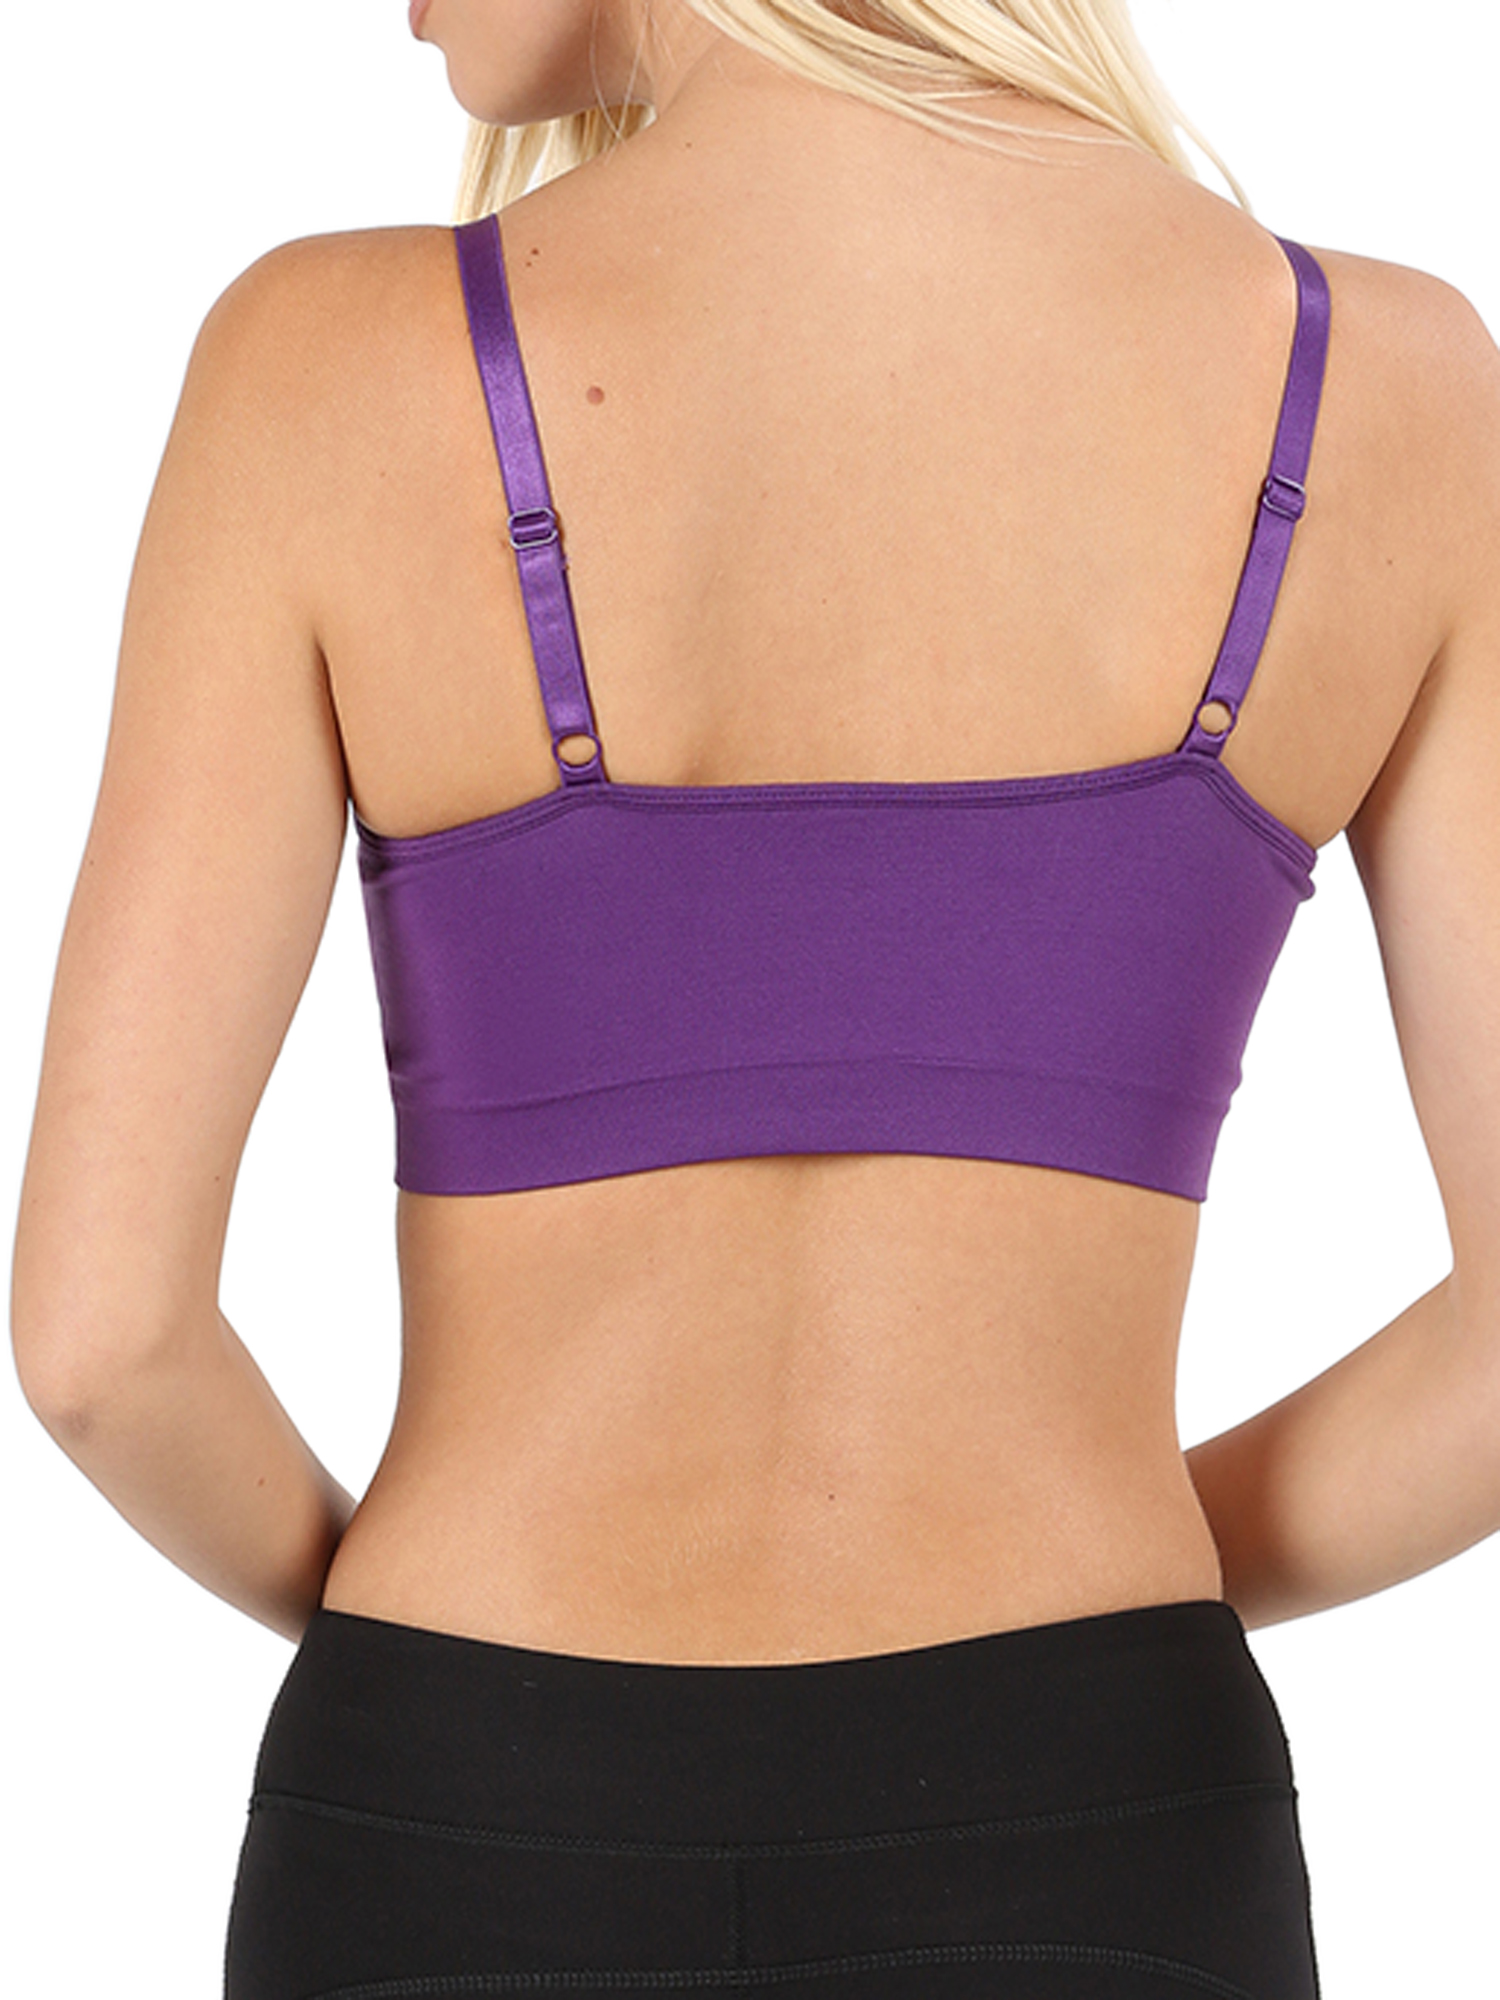 Women/'s Front V-Lattice Bralette with Adjustable Straps and Removable Bra Pads